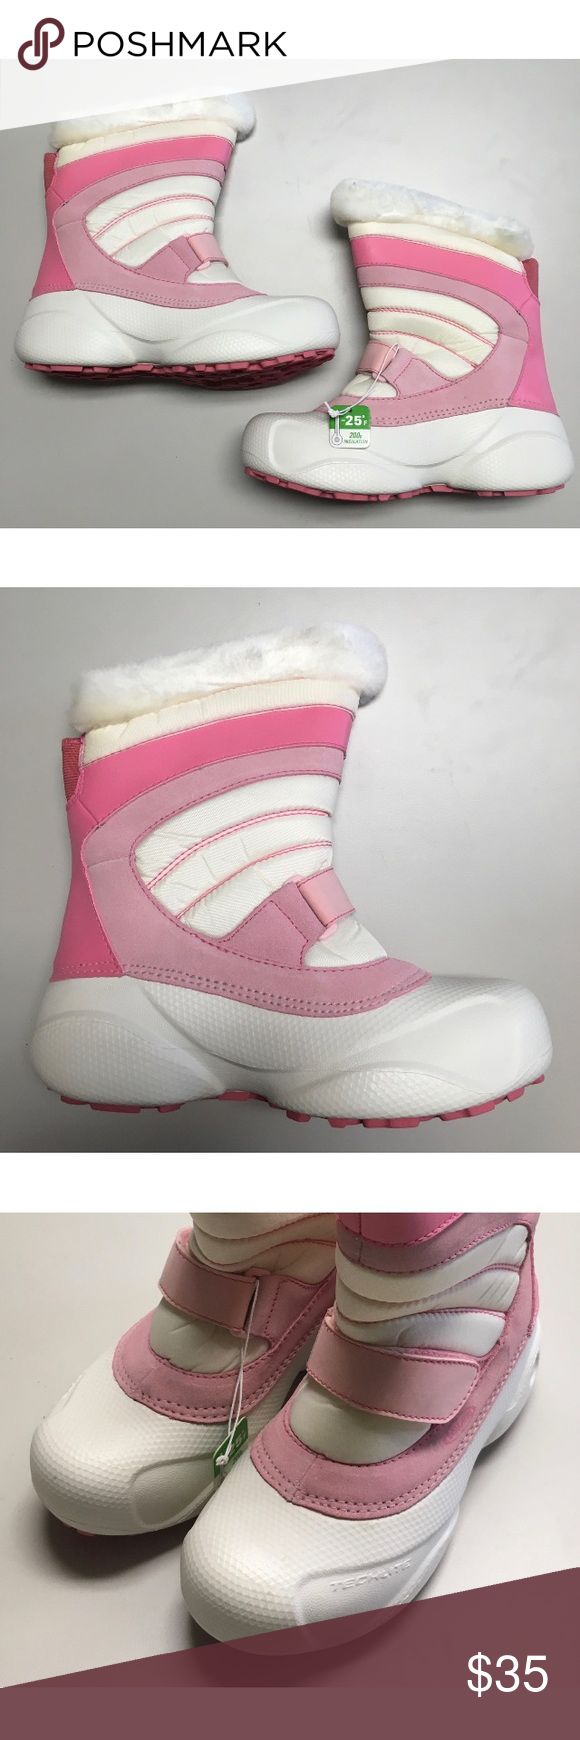 Columbia Snow Day Pink & White Boots In perfect condition, new with tags. I bought three pairs for my kids so I have a size 1, size 3, and a size 5 but we moved and no longer can use them. They may look slightly dirty in the photo, but I can assure you they are not, it is just due to the lighting not being the greatest and some shadow casting. They are soft, easy to put on, and it will keep your little ones feet warm for the winter! Columbia Shoes